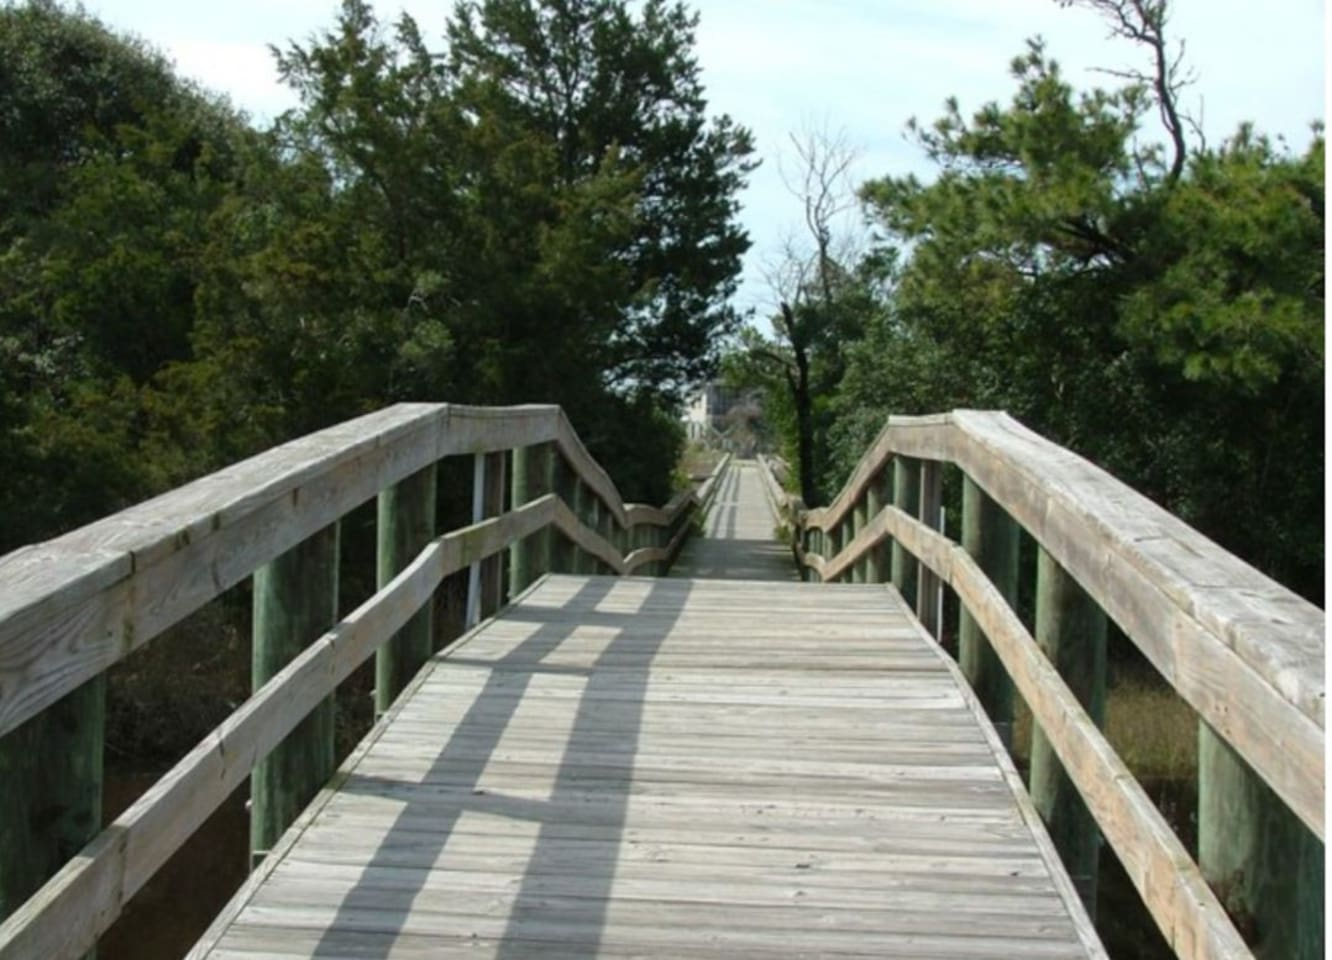 Scenic walkway to the beach.